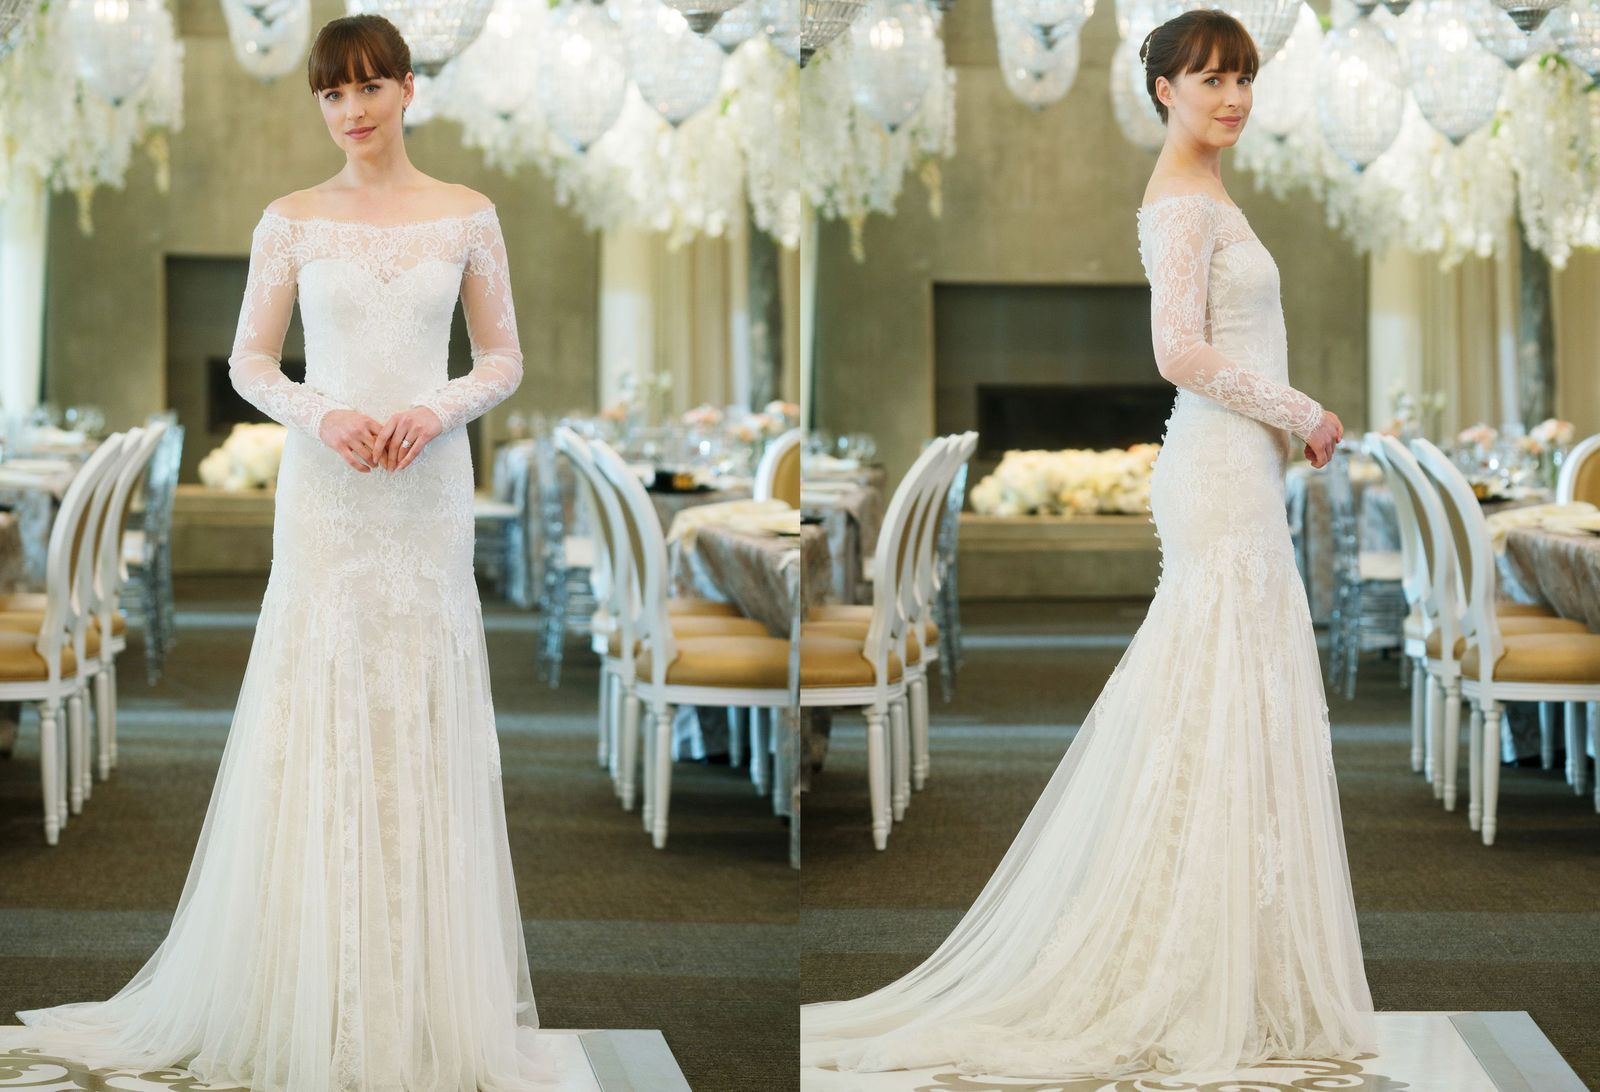 It Took 3 Months To Make The Fifty Shades Freed Wedding Dress Movie Wedding Dresses Dark Wedding Dress Free Wedding Dress